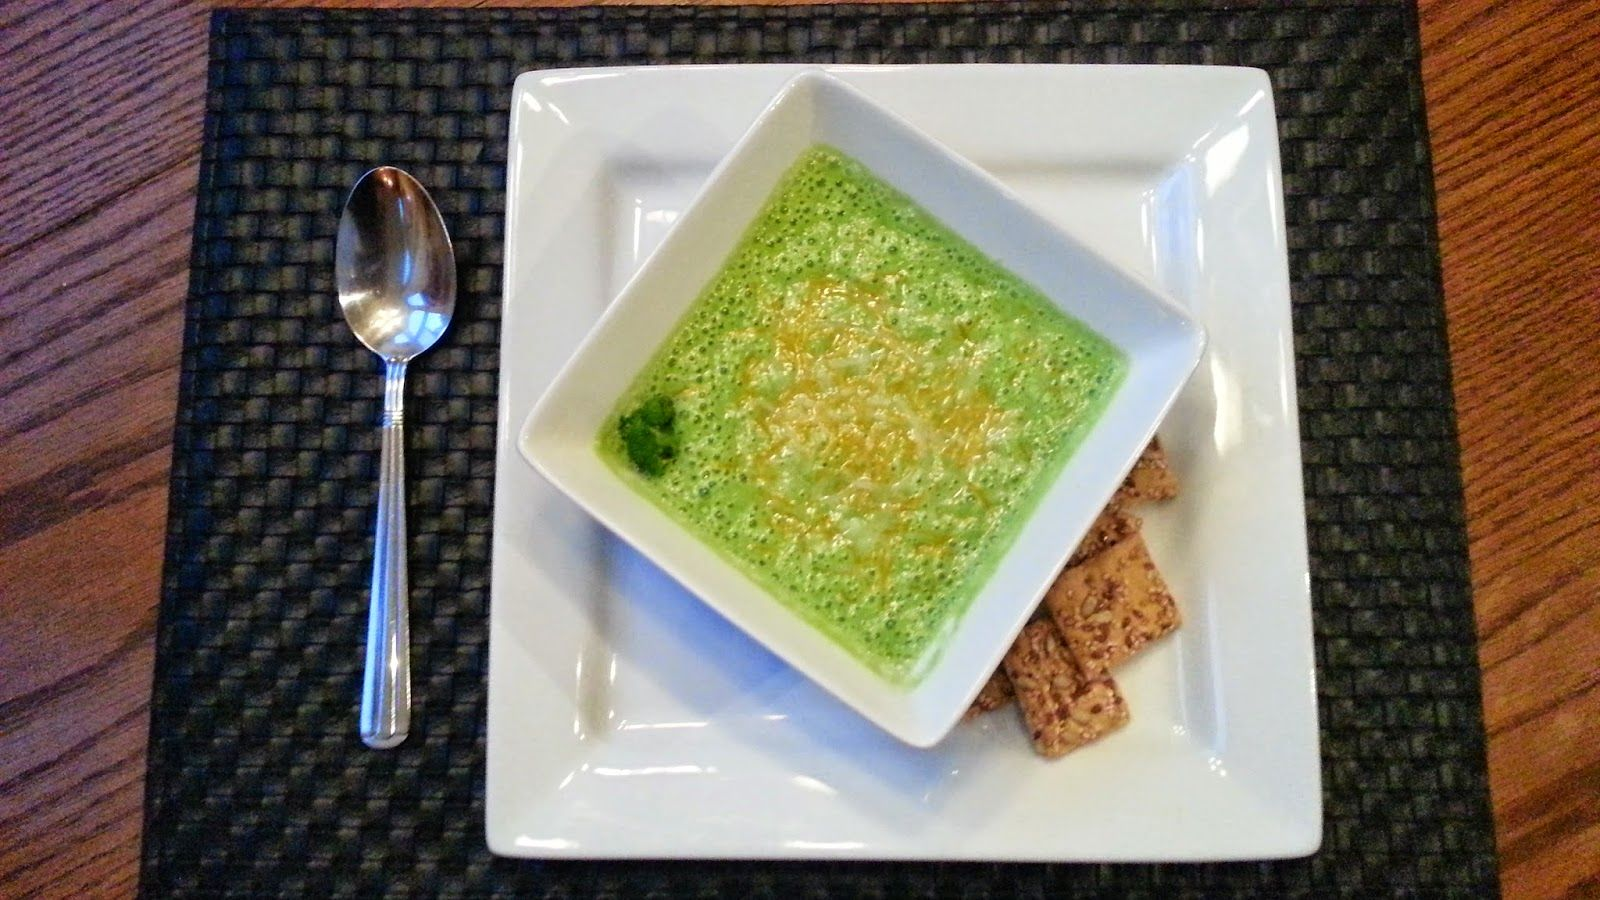 Jenn Gibbs Fitness: Easy Broccoli Cheese Soup Recipe - this one from my own blog and kitchen :)